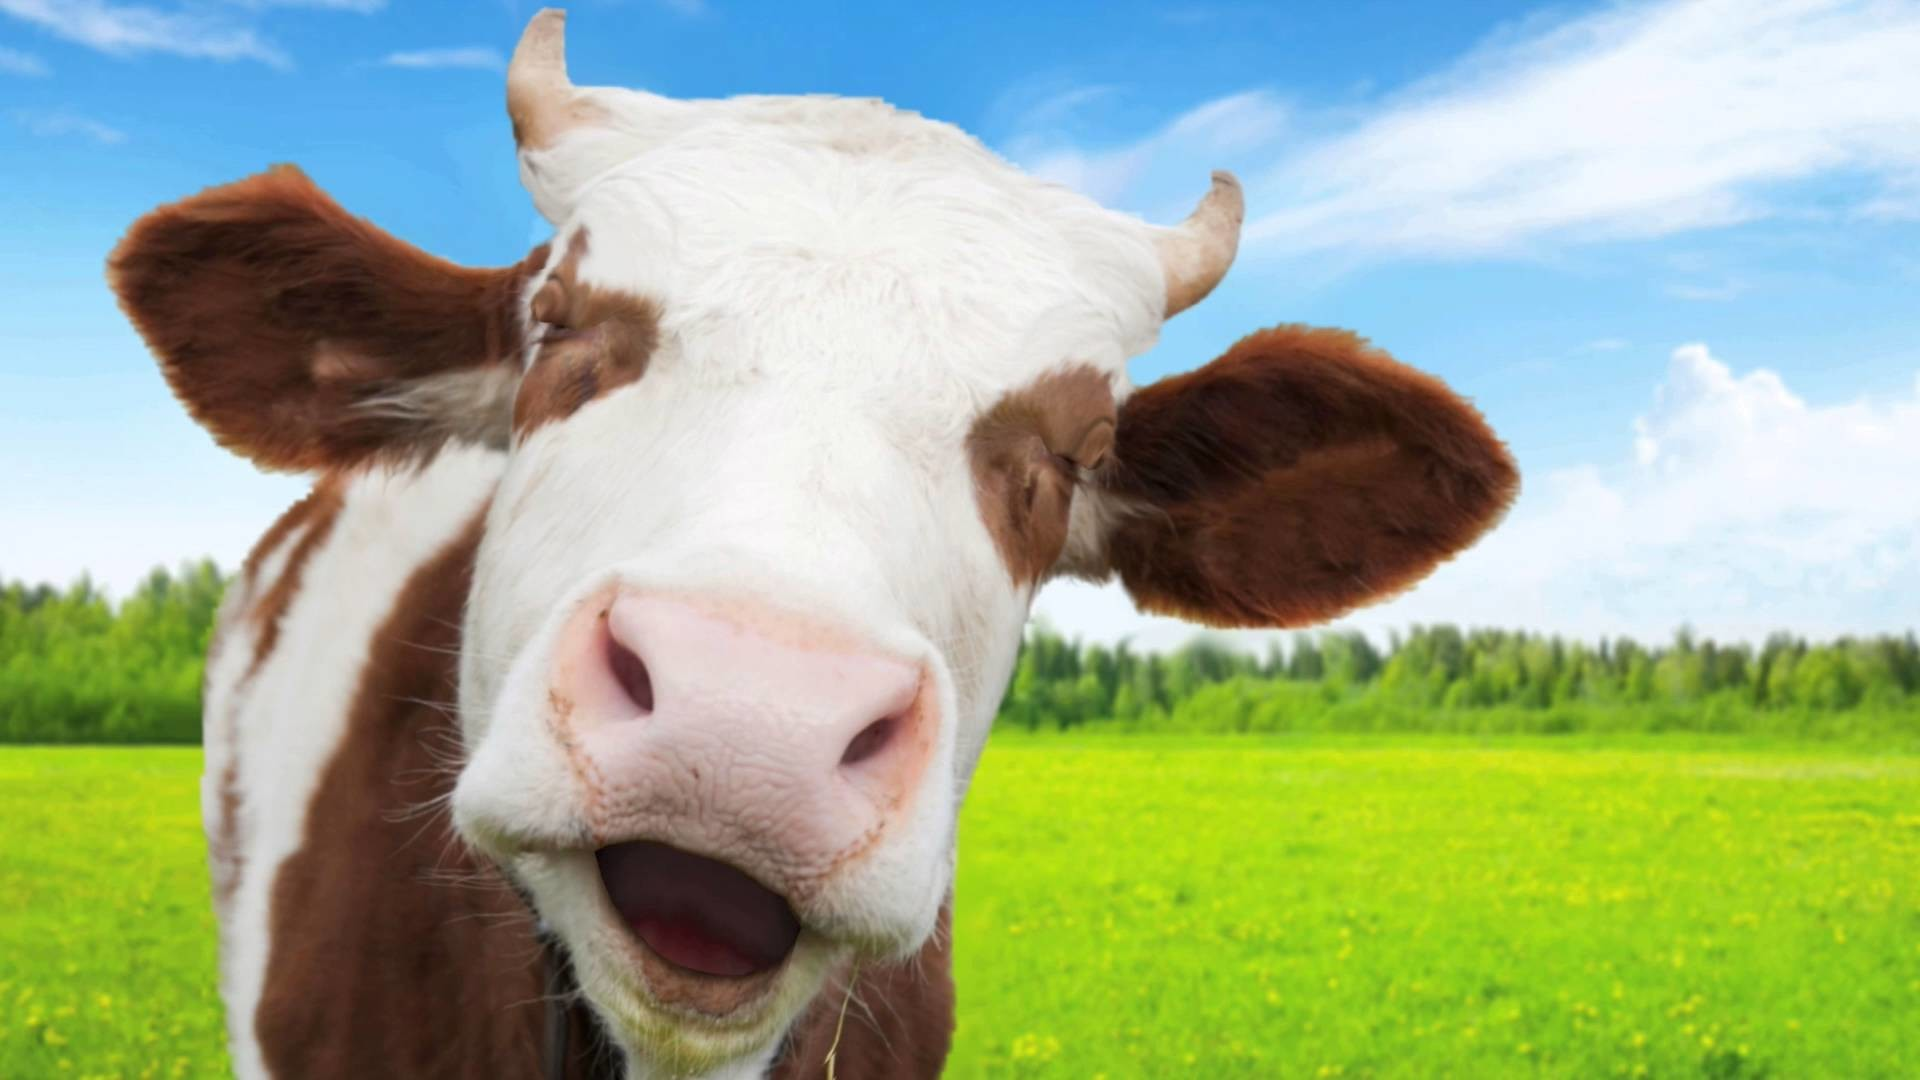 Funny Cow Wallpaper 54 Images